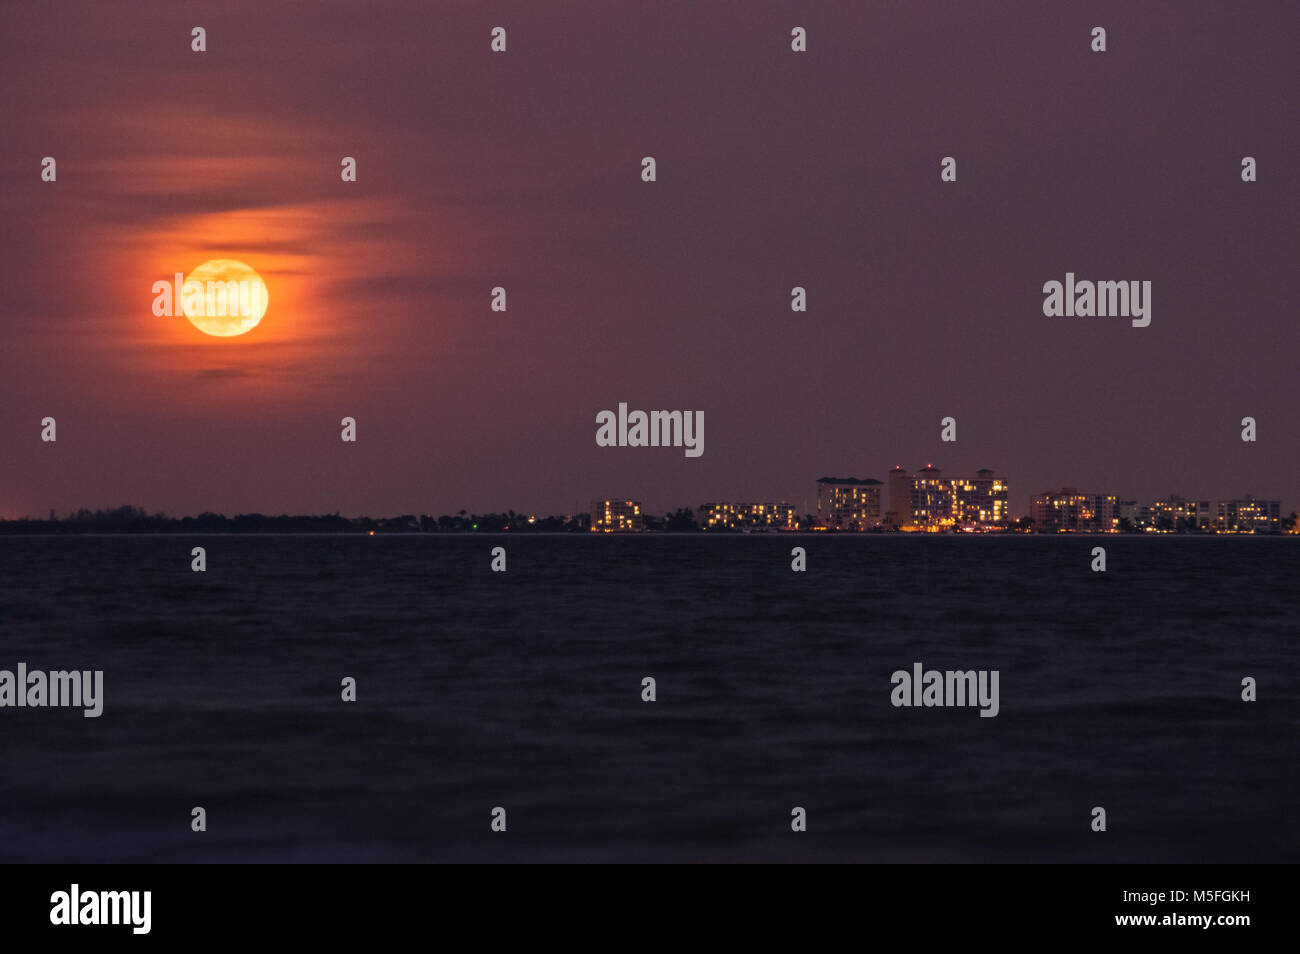 A full red moon rises above the large condos that line the horizon's edge across Fort Myers Beach in Florida. - Stock Image